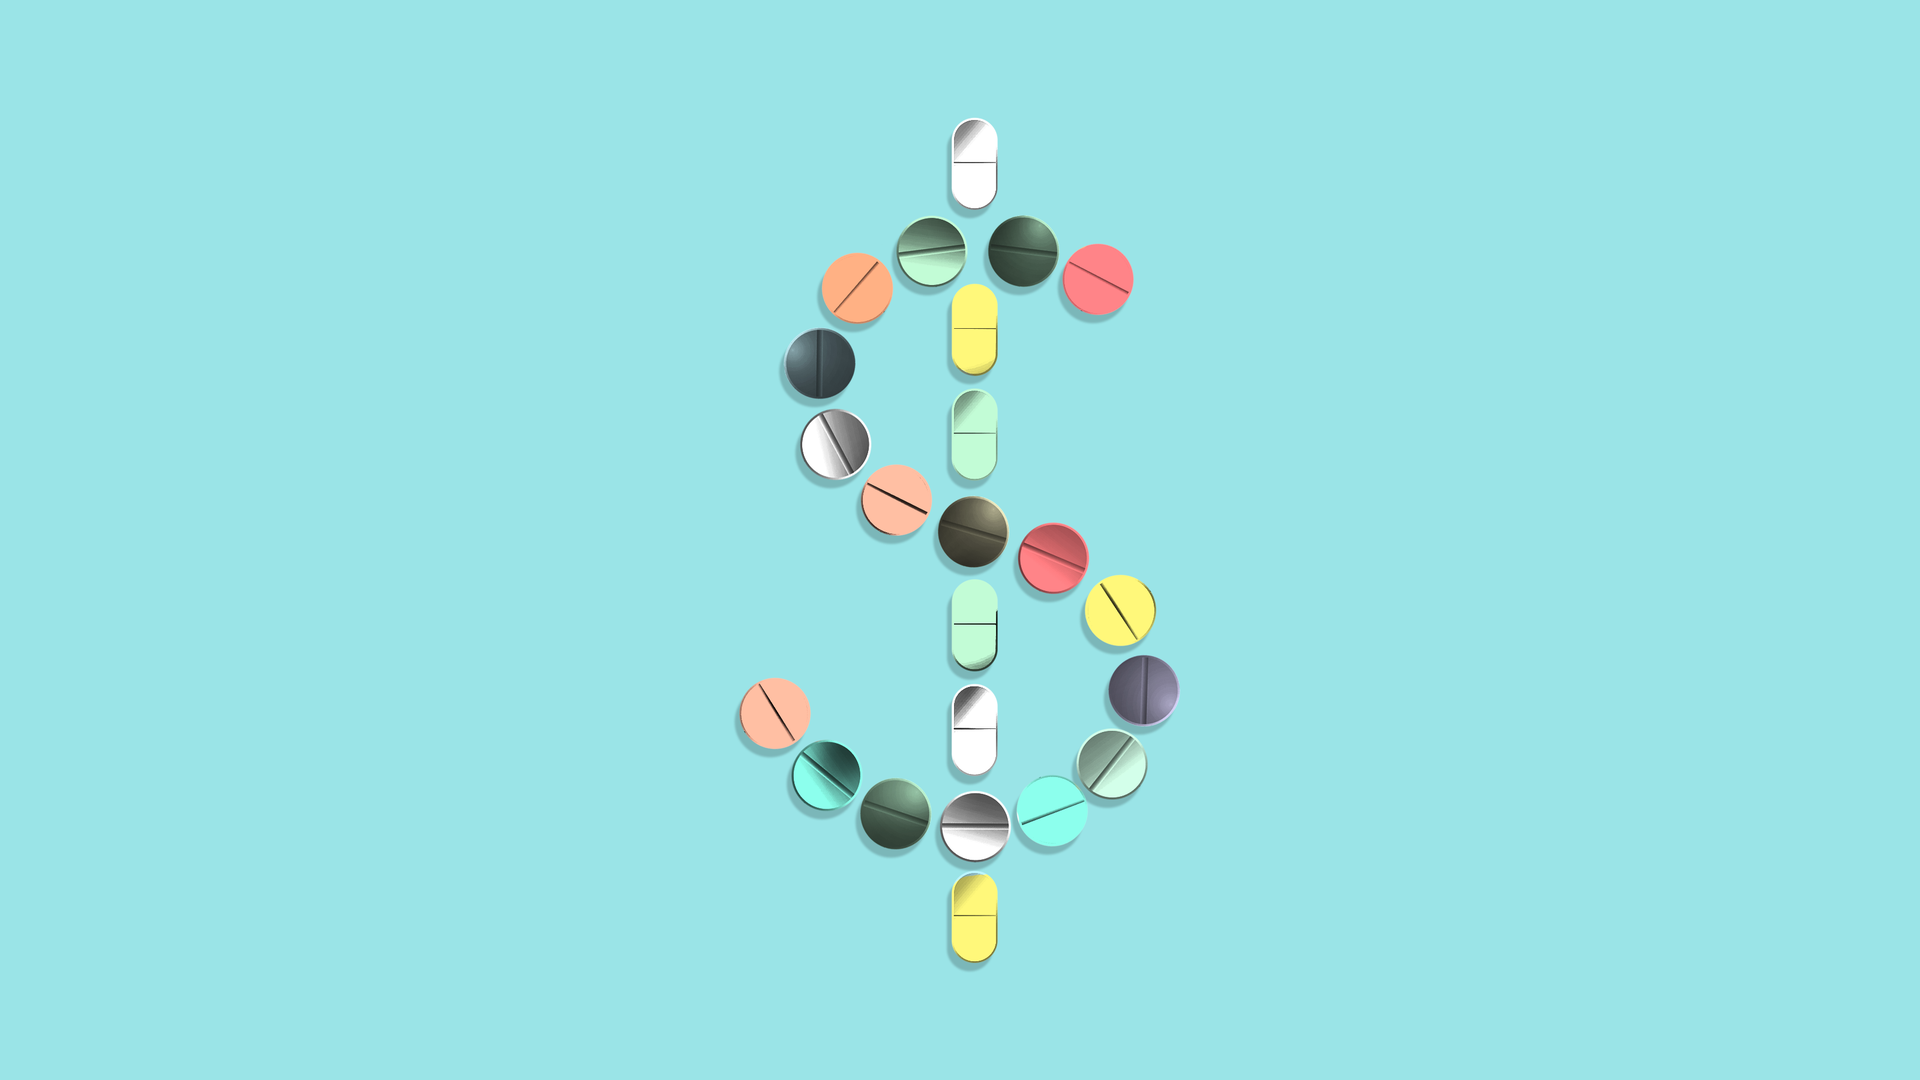 In this illustration, multi-colored pills make up a large dollar sign.